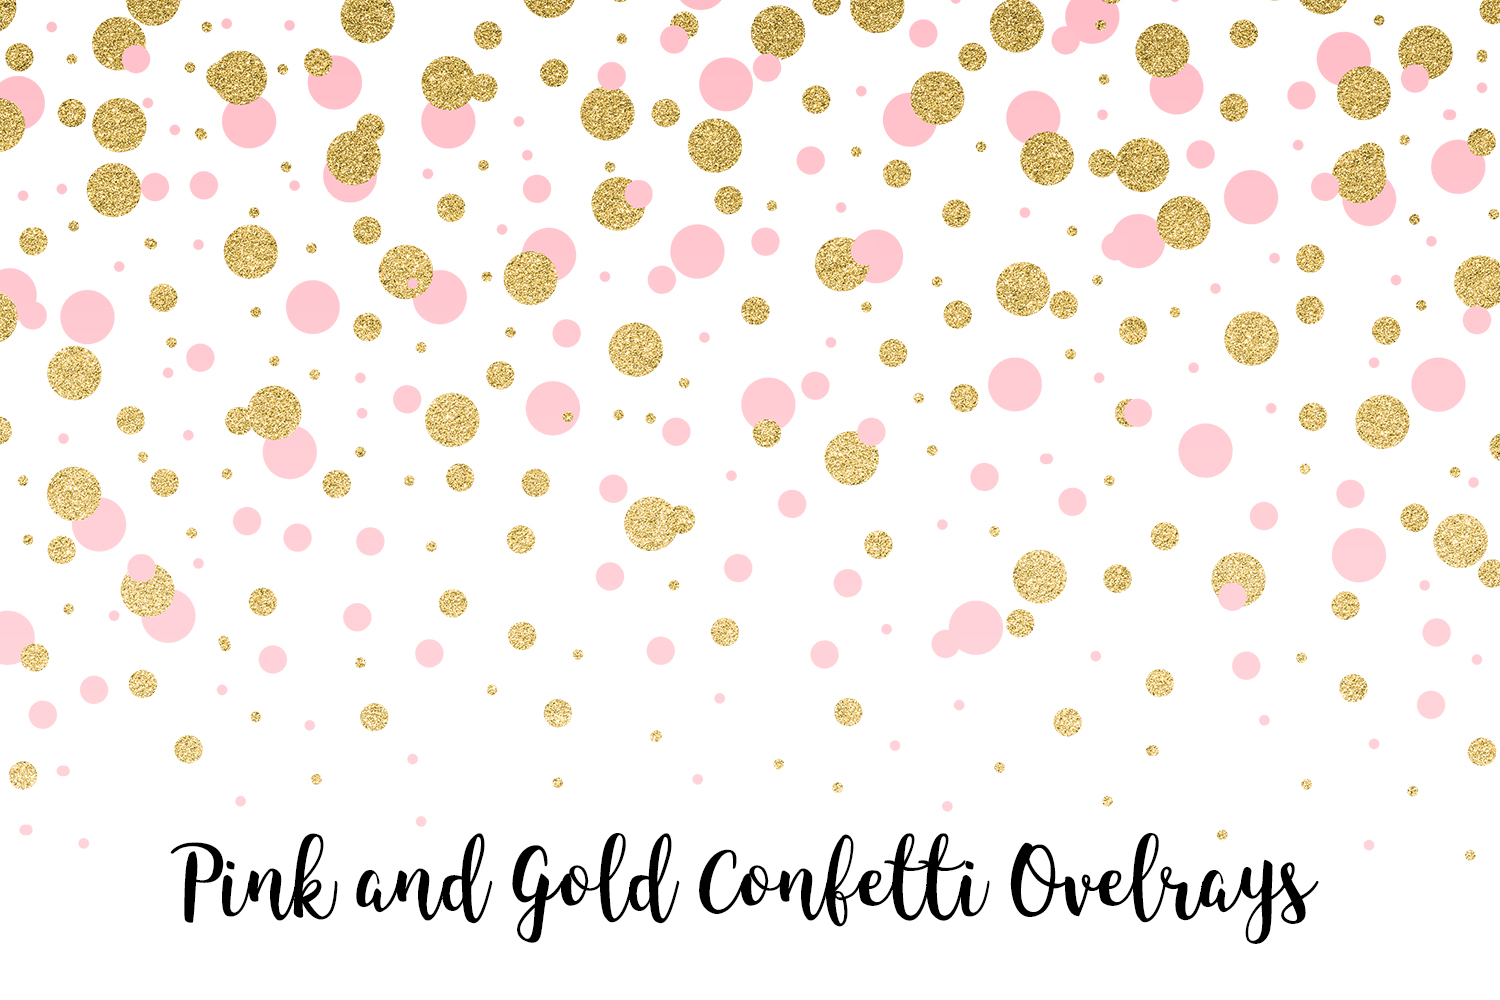 Pink and Gold Confetti Overlays, Transparent PNGs example image 8